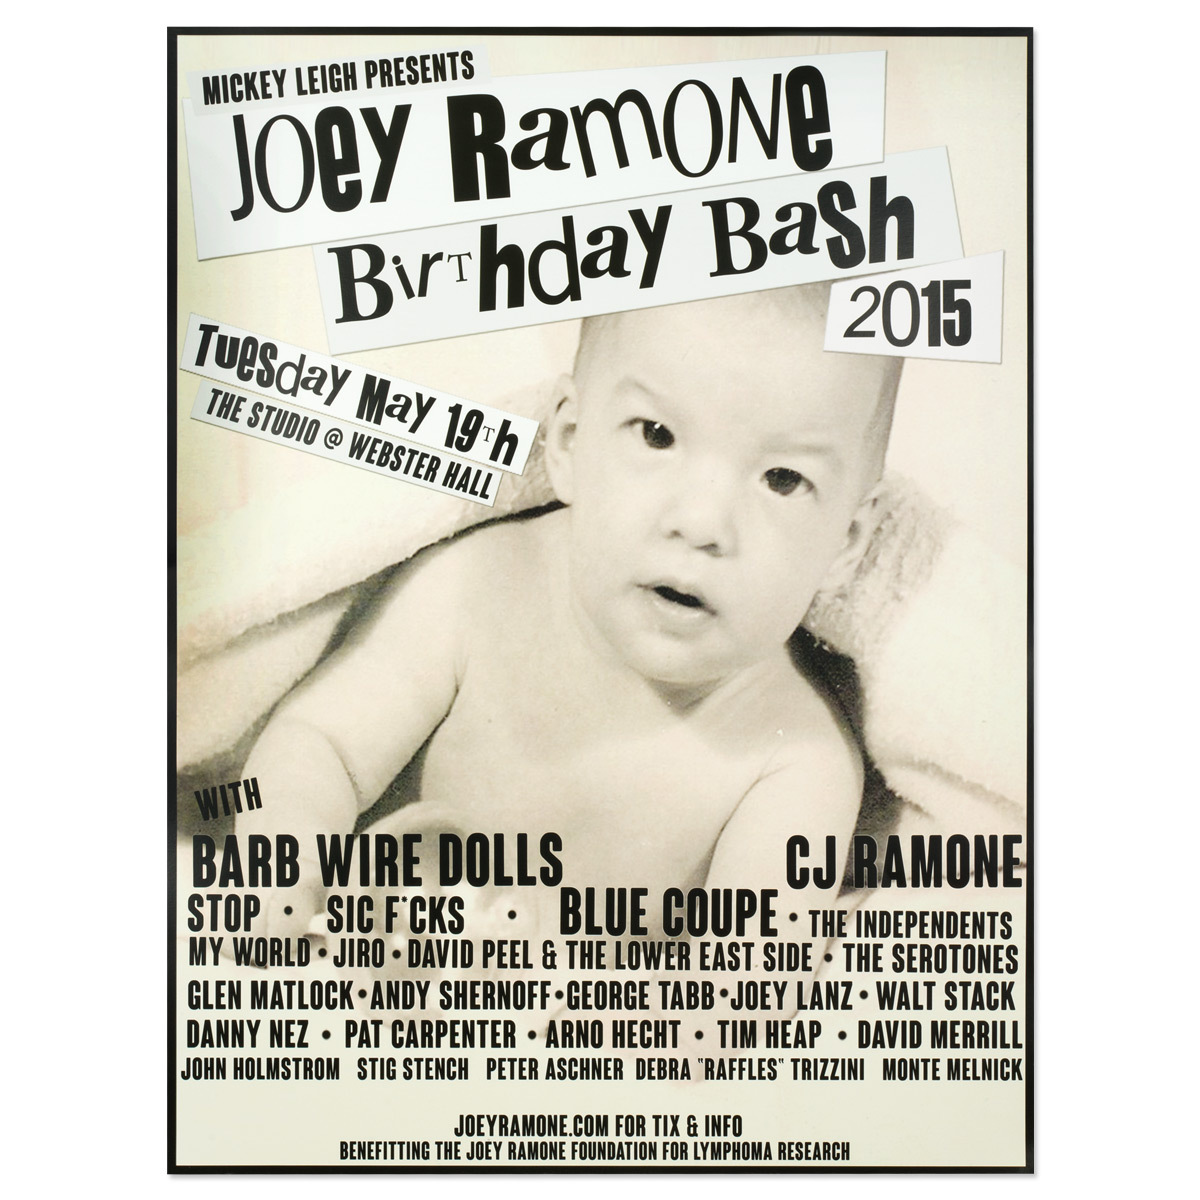 Joey Ramone Birthday Bash 2015 Poster